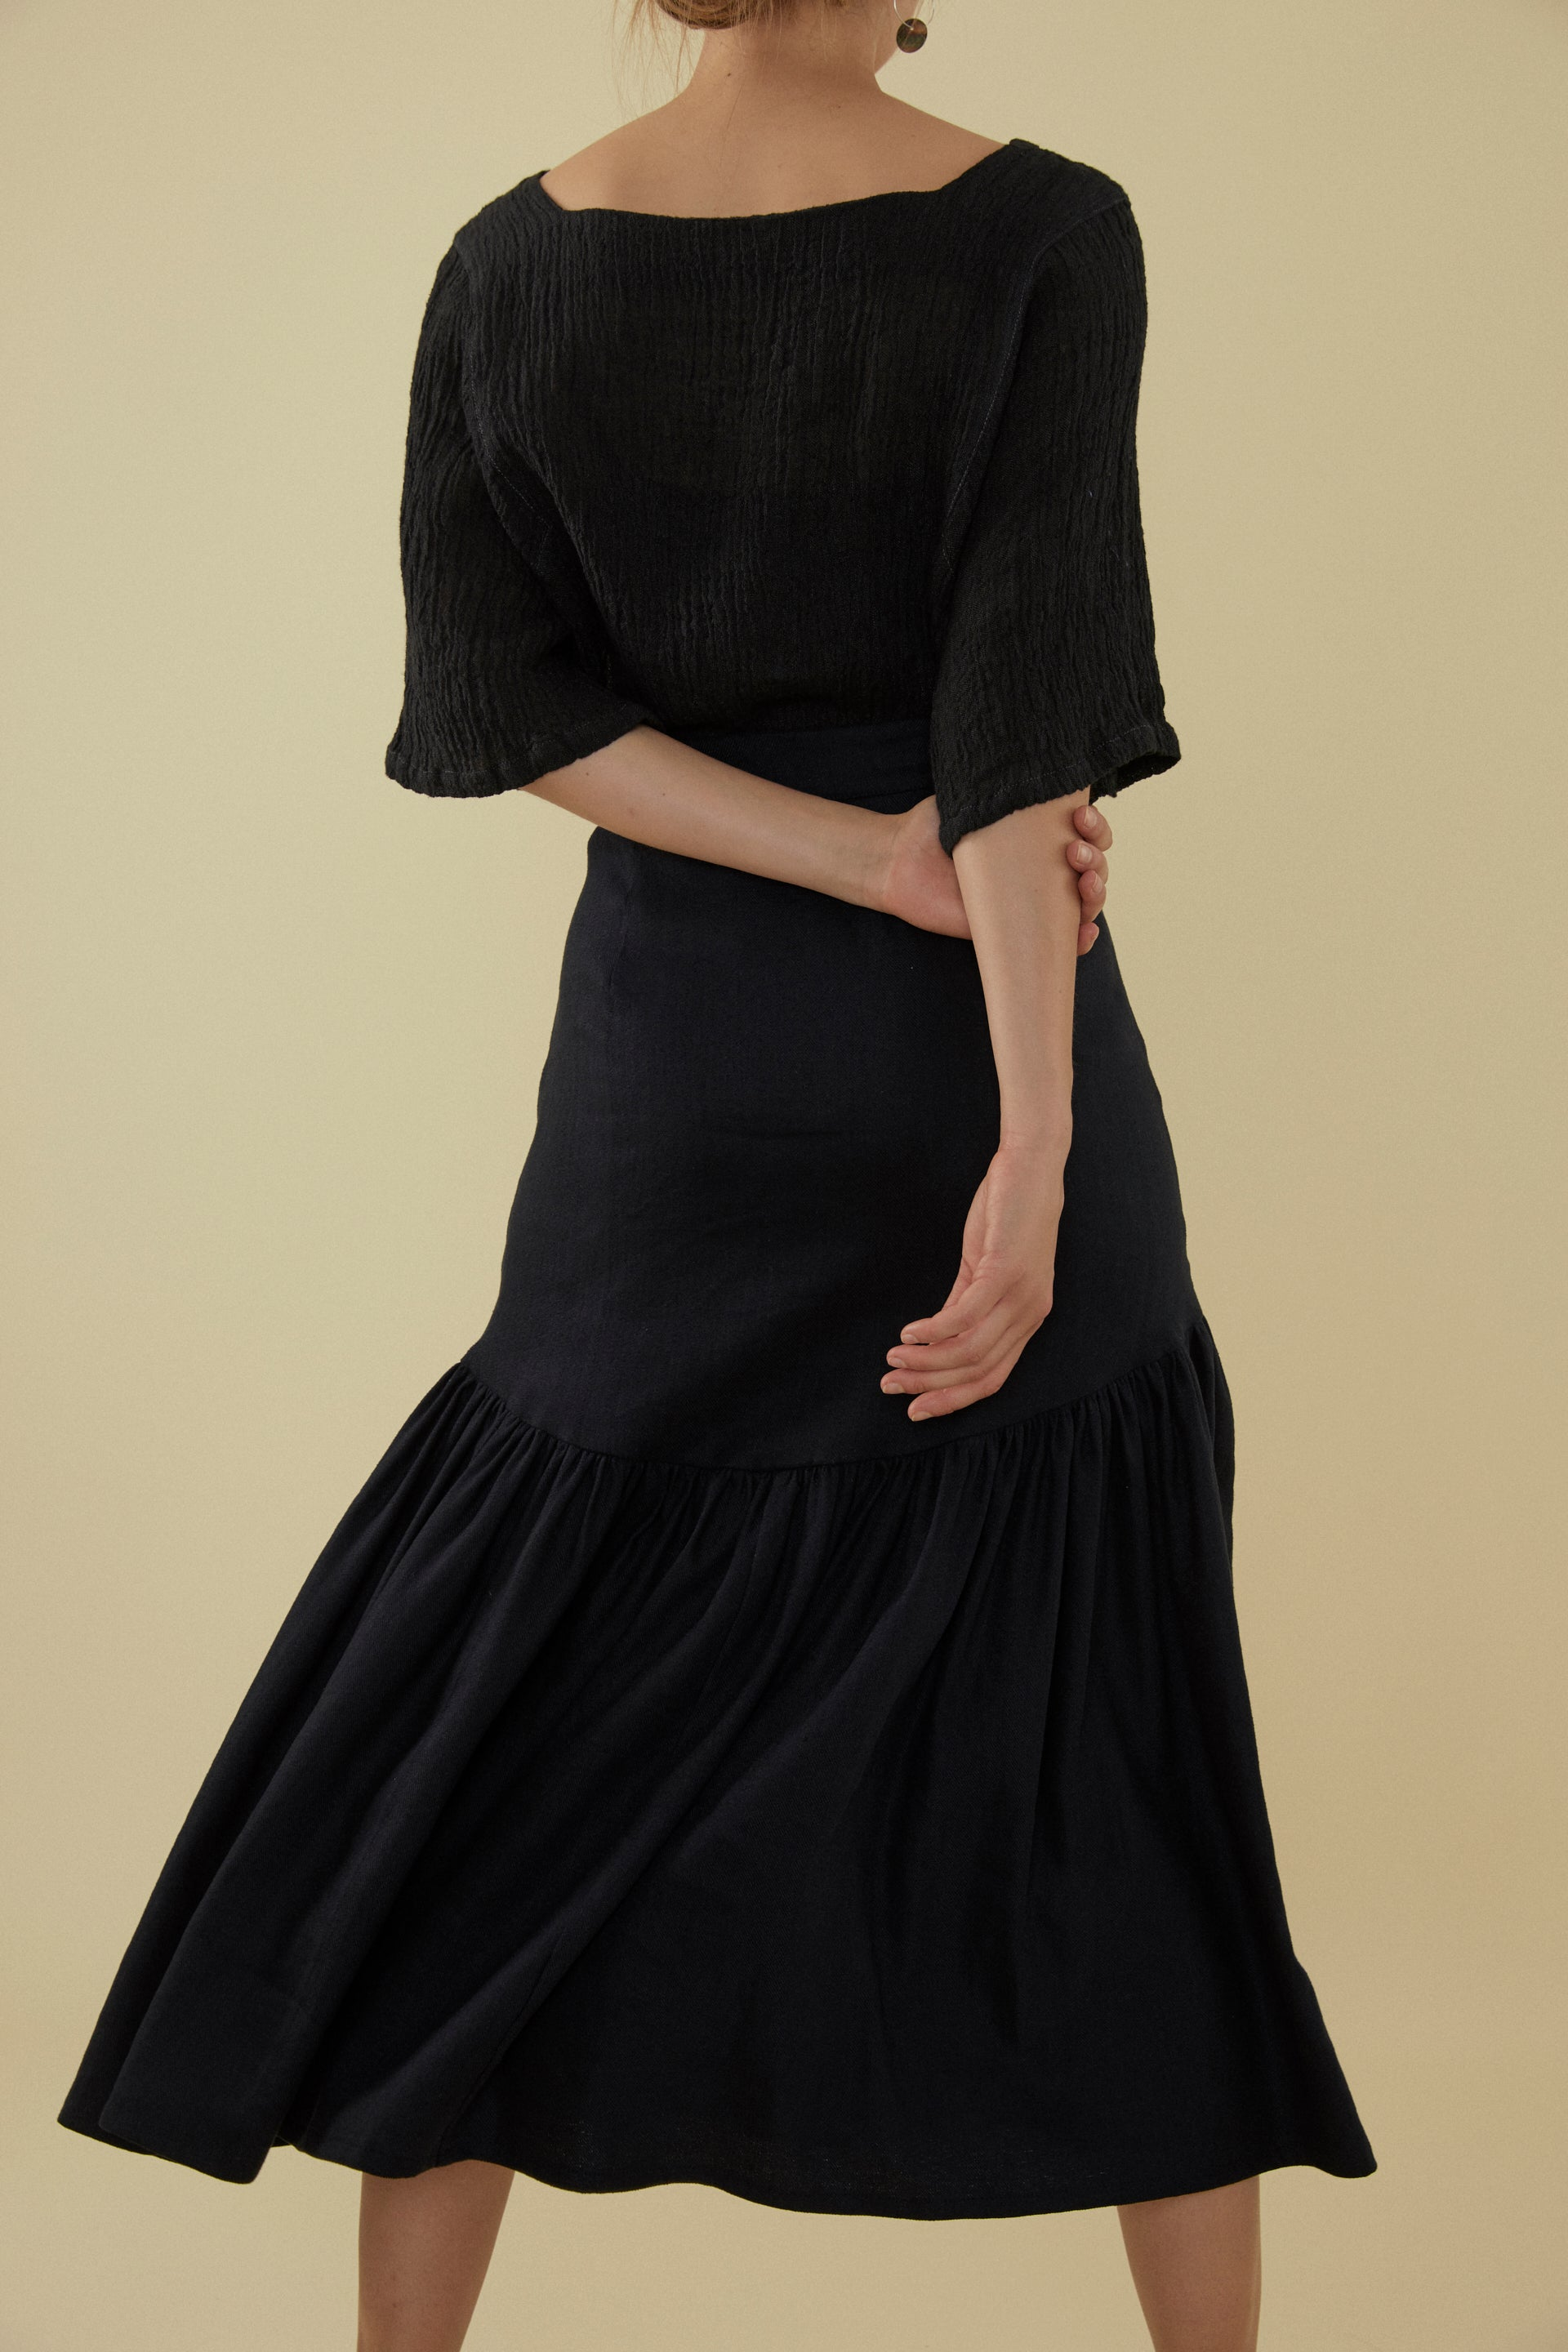 Bell Skirt - Shadow Linen Tencel